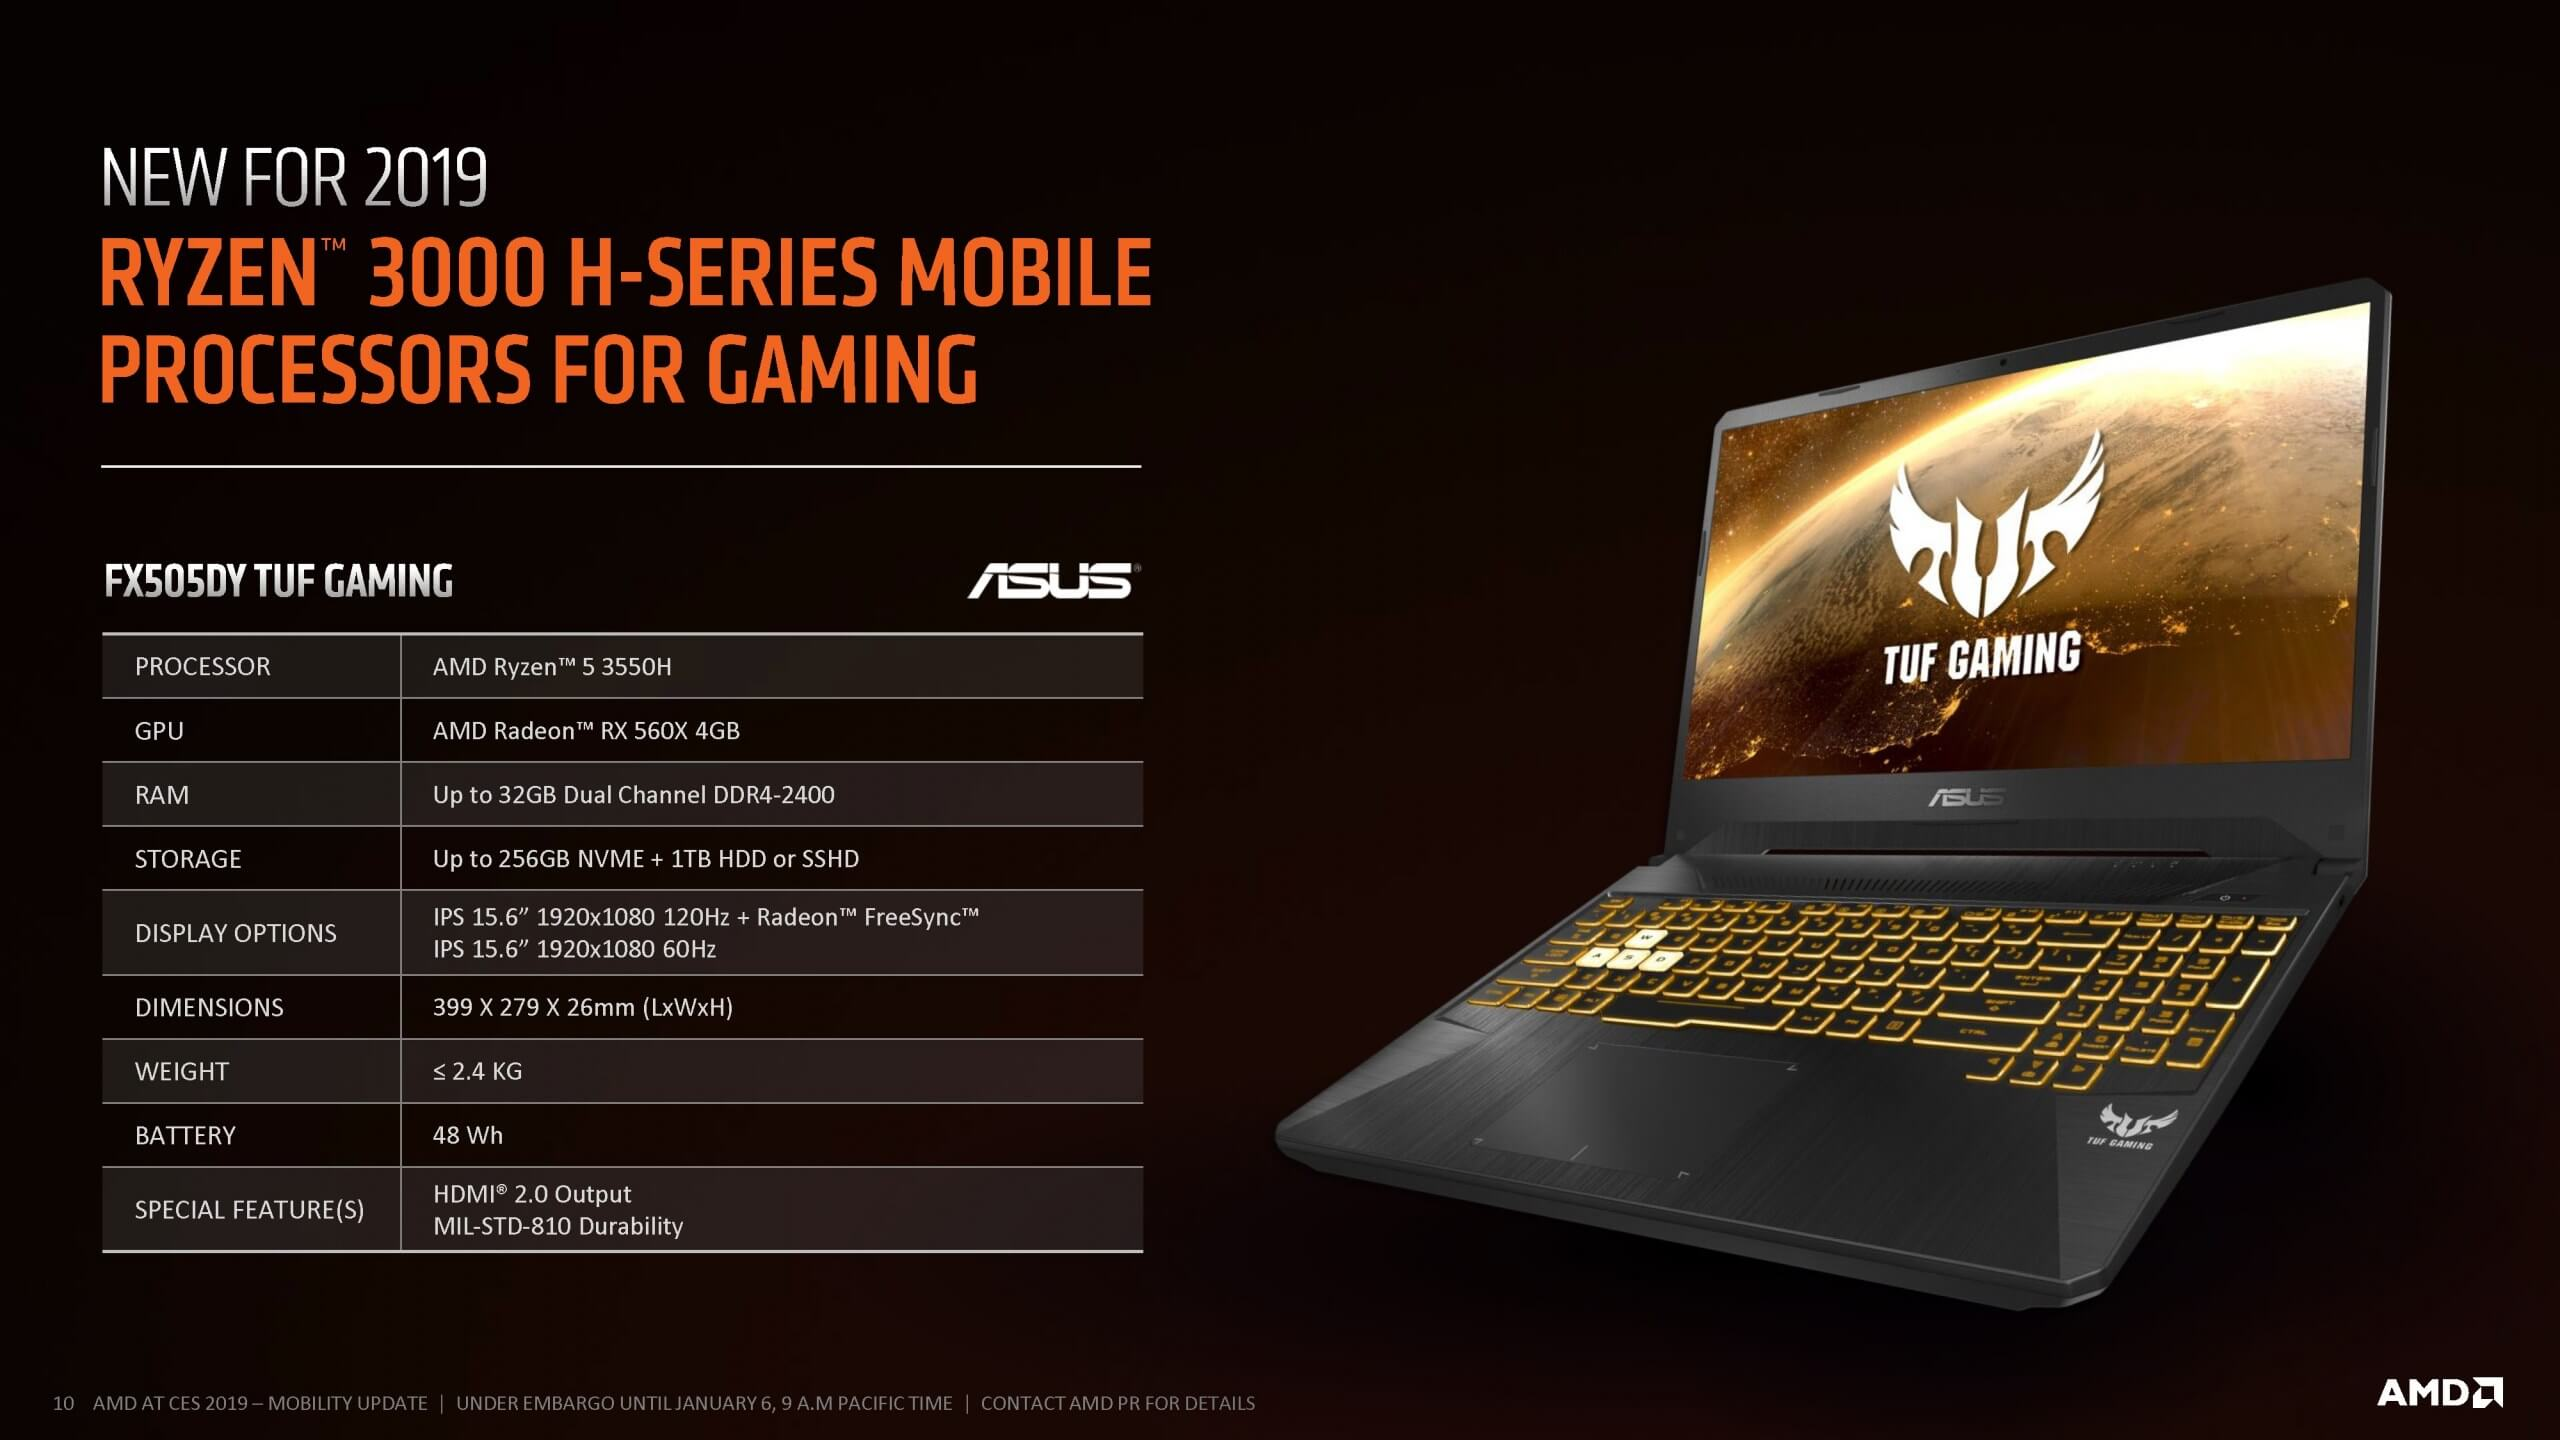 Ryzen Mobile gets a boost, wants in the entry-level gaming laptop